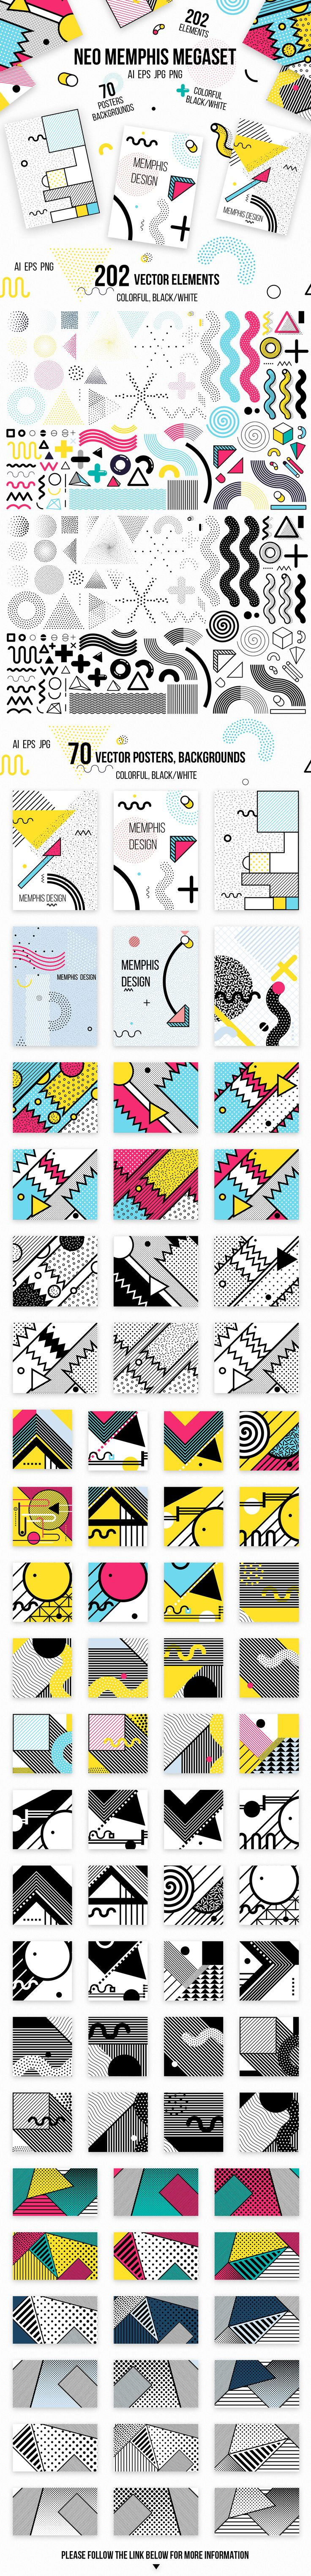 "Check out this @Behance project: ""272 patterns, posters, elements. MEMPHIS MEGAset"" https://www.behance.net/gallery/46513541/272-patterns-posters-elements-MEMPHIS-MEGAset"